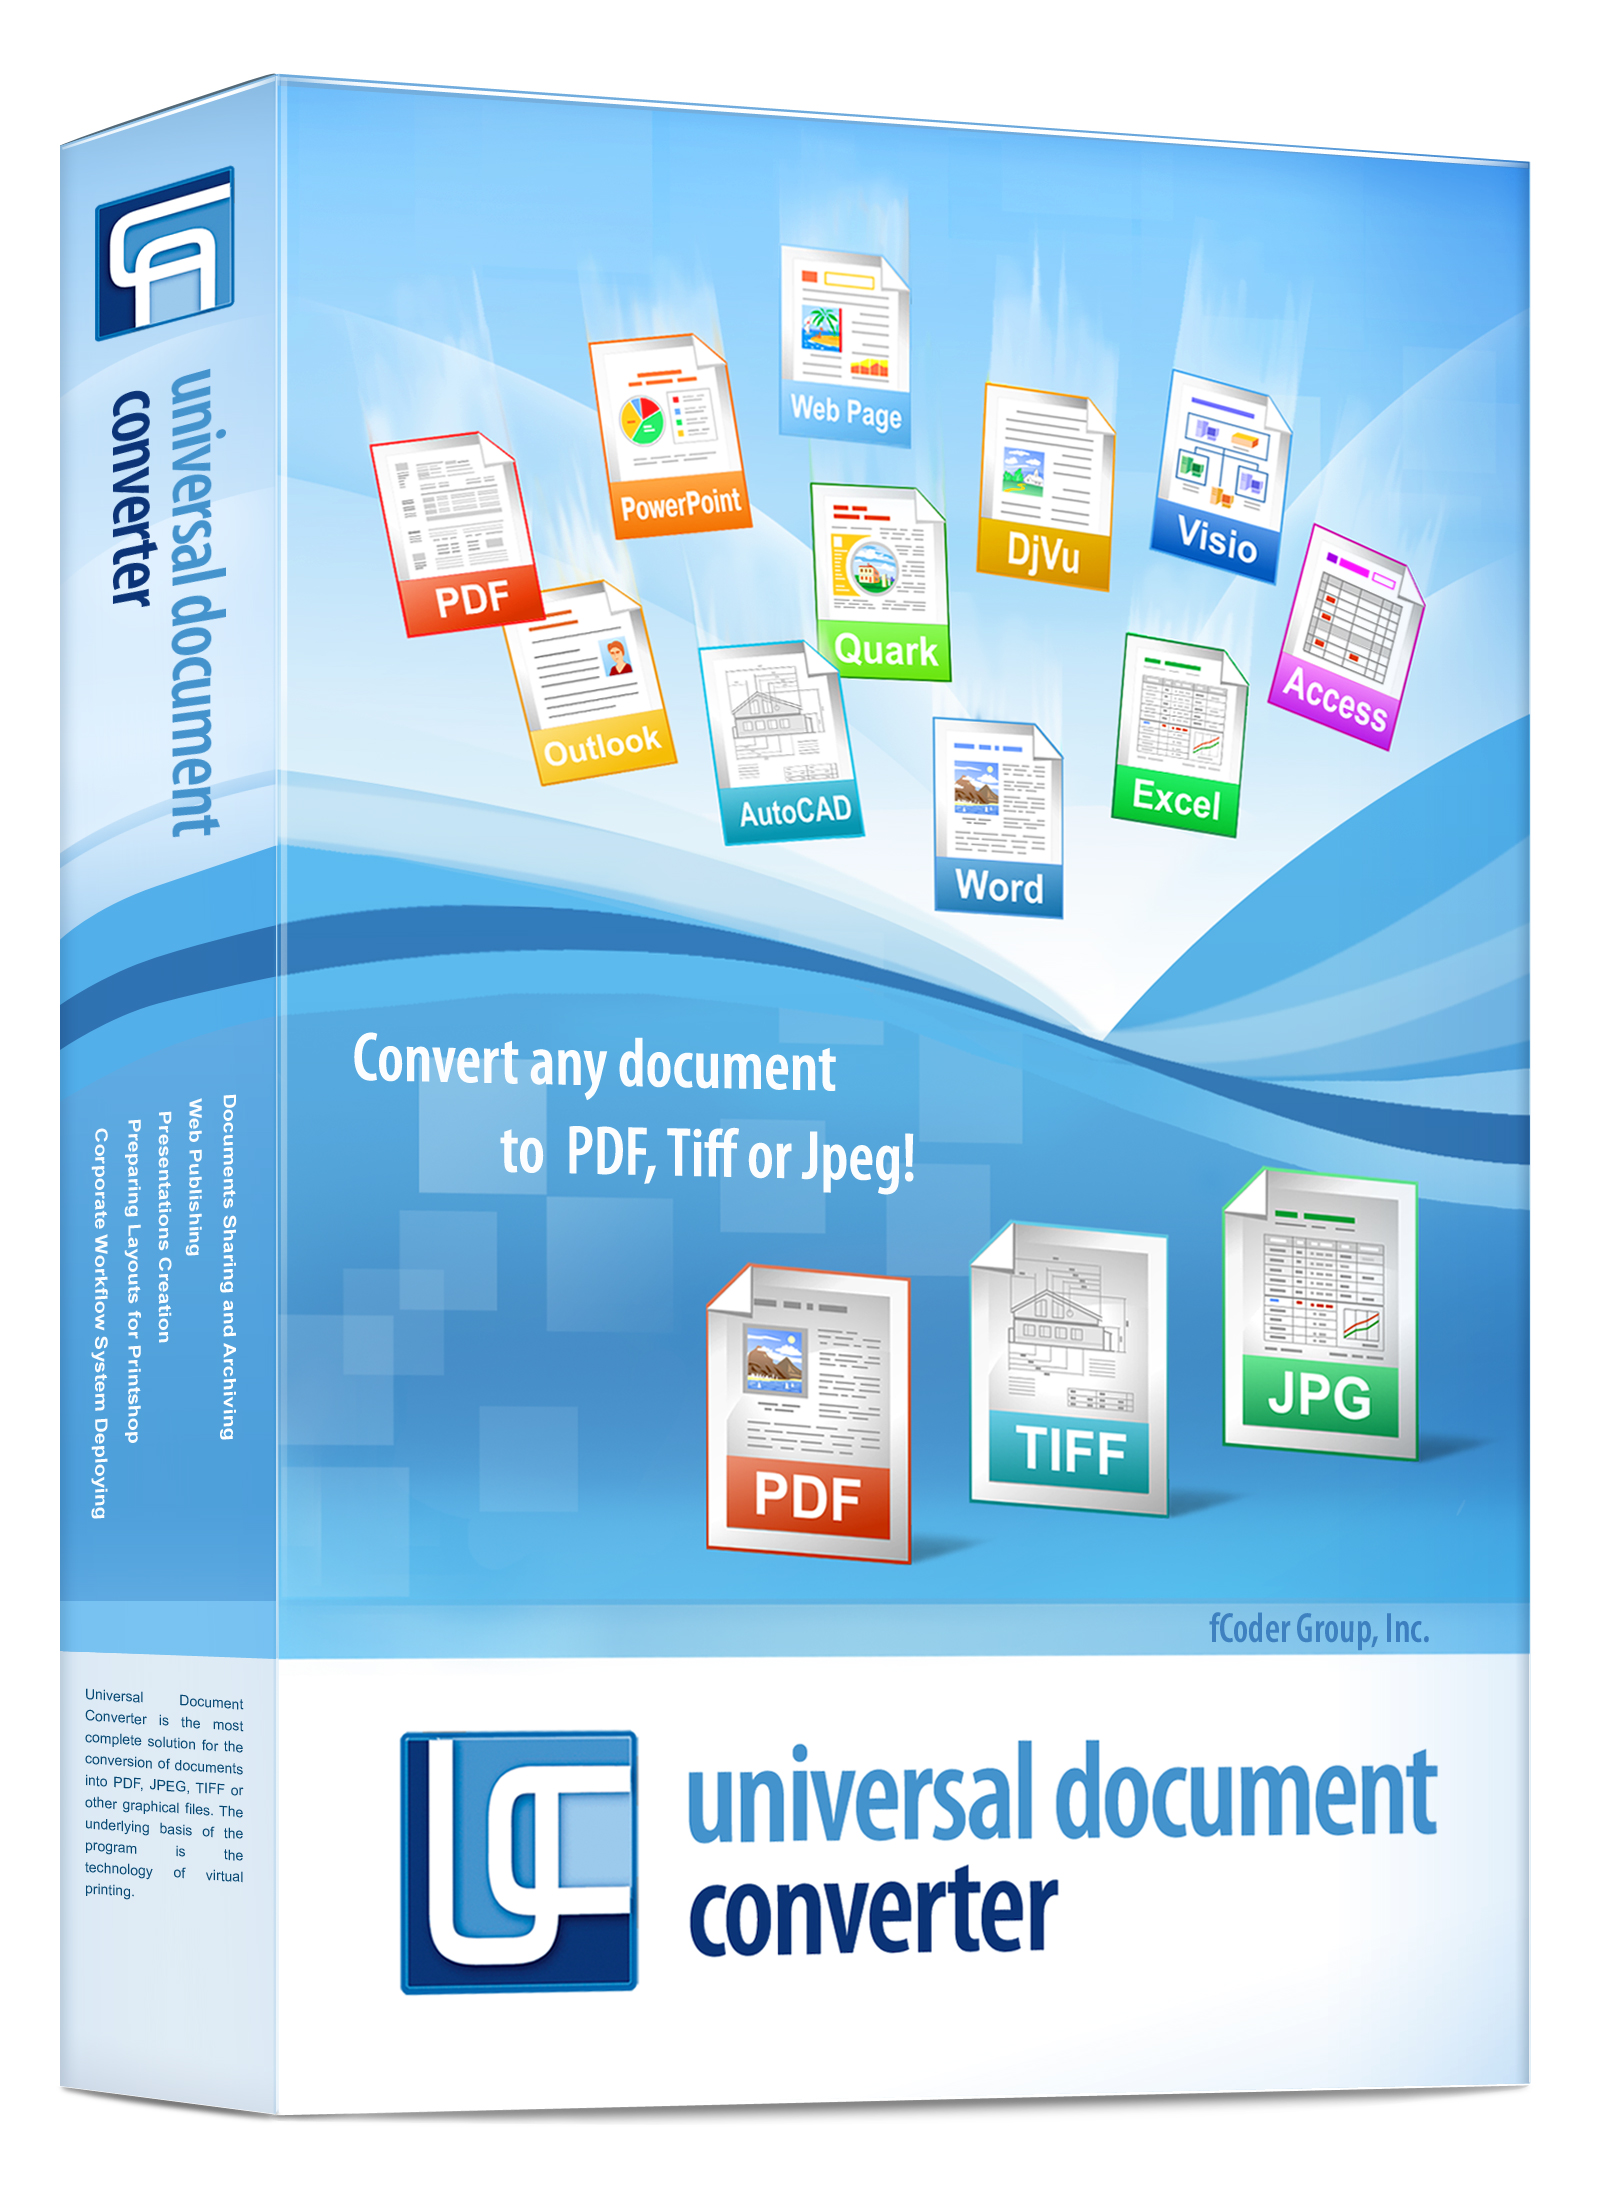 Universal Document converter wafiapps